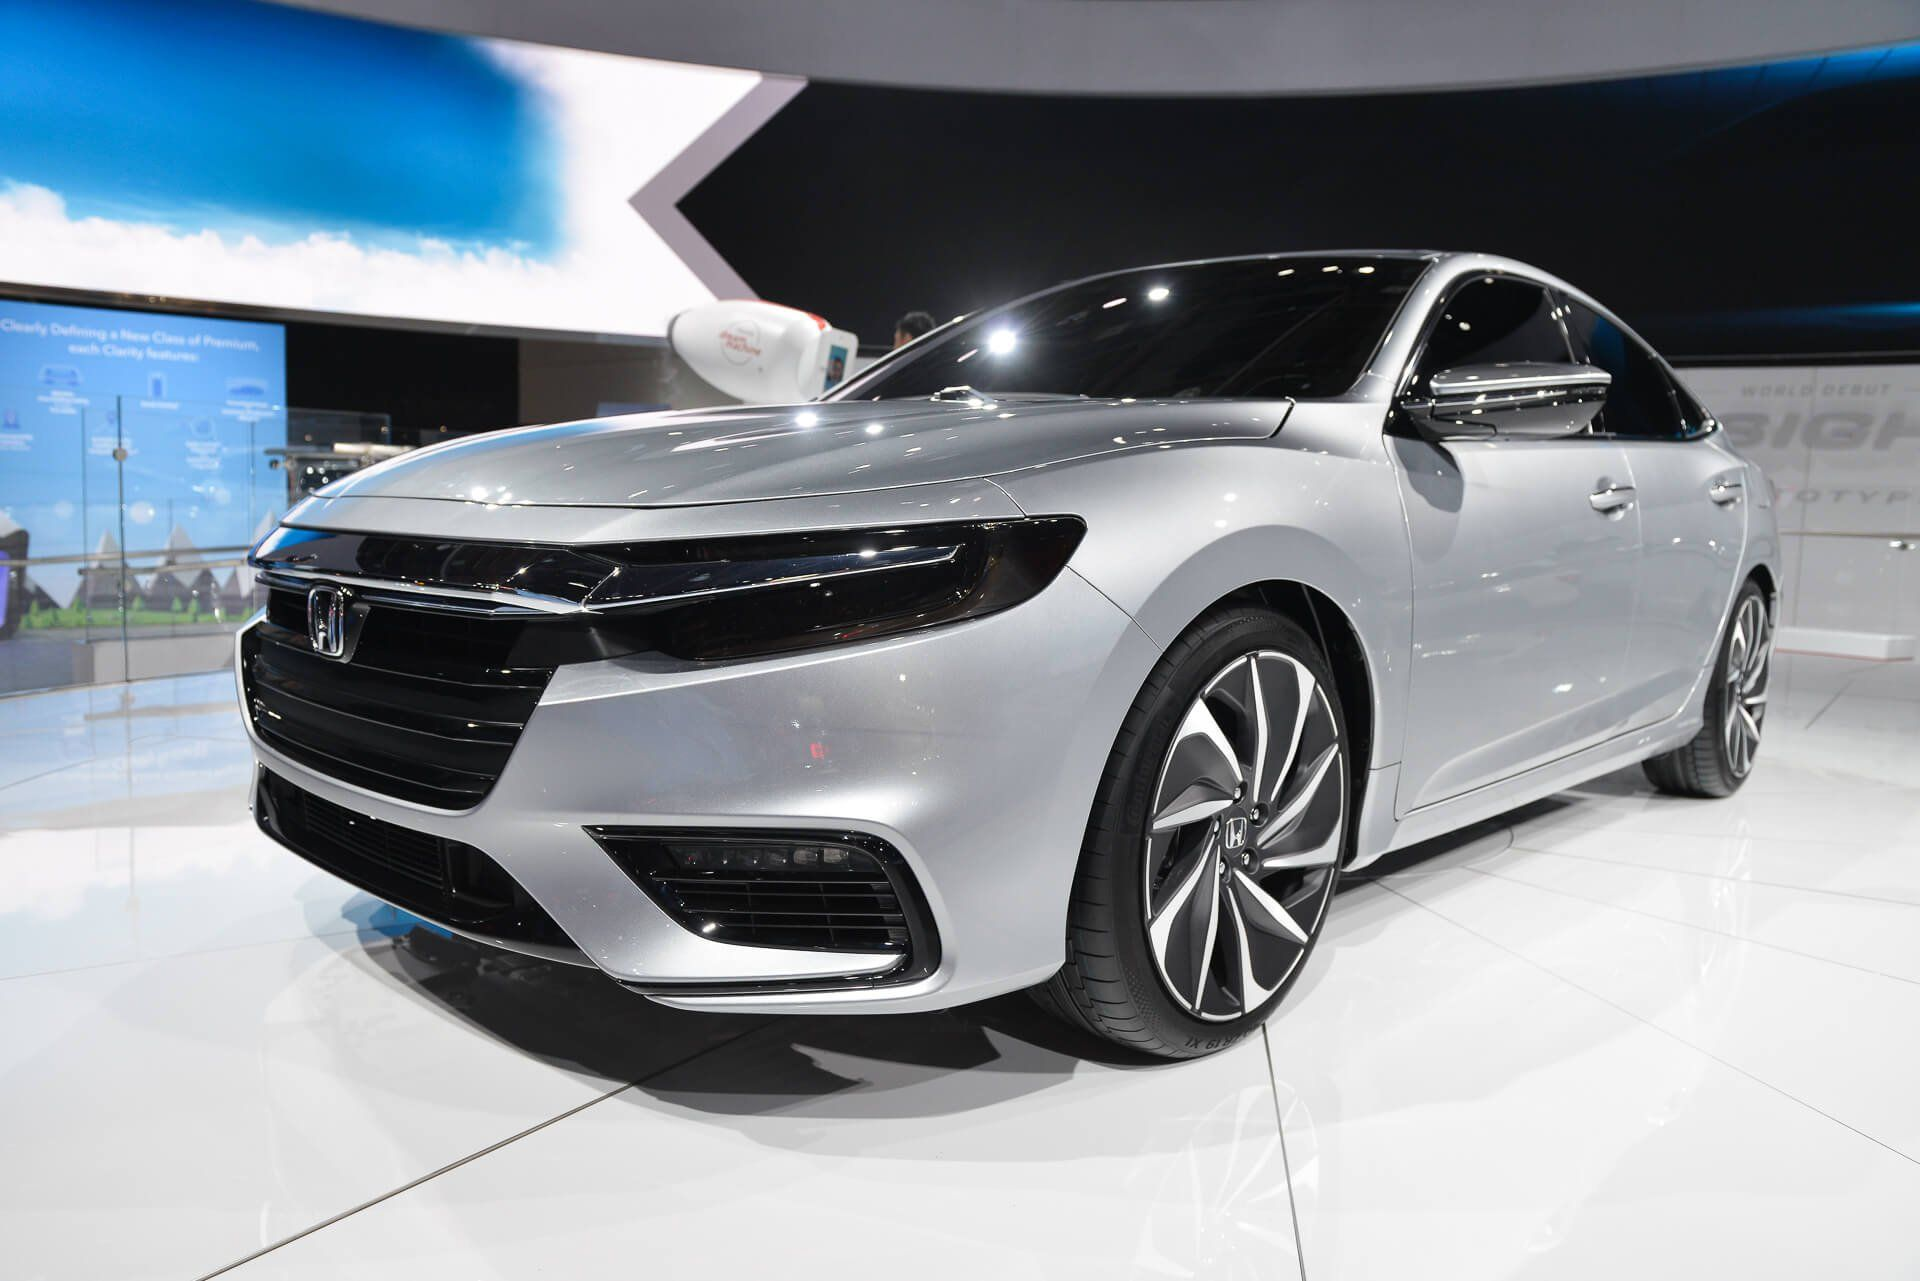 honda civic 2020 facelift model from honda  sneak preview of the upcoming 2019